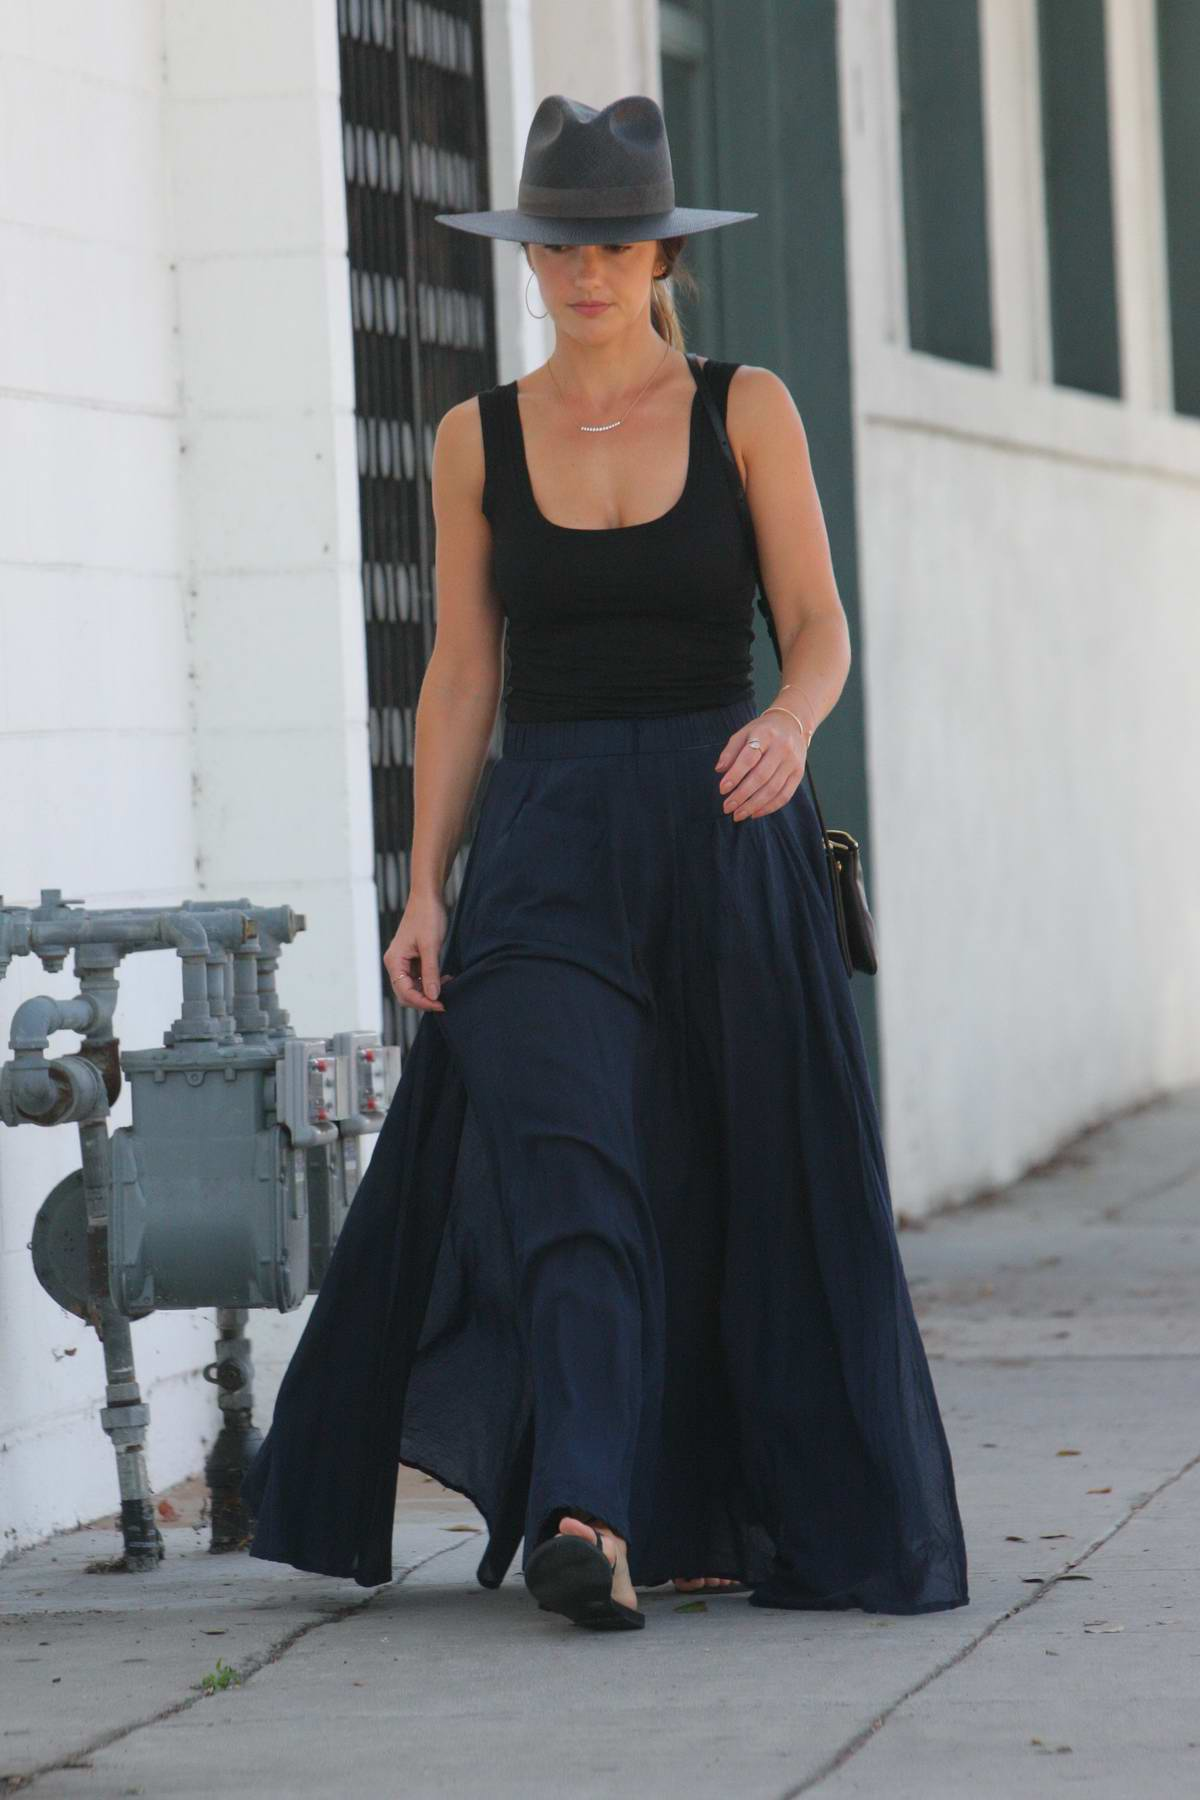 Minka Kelly wears a black tank top and long blue skirt ...